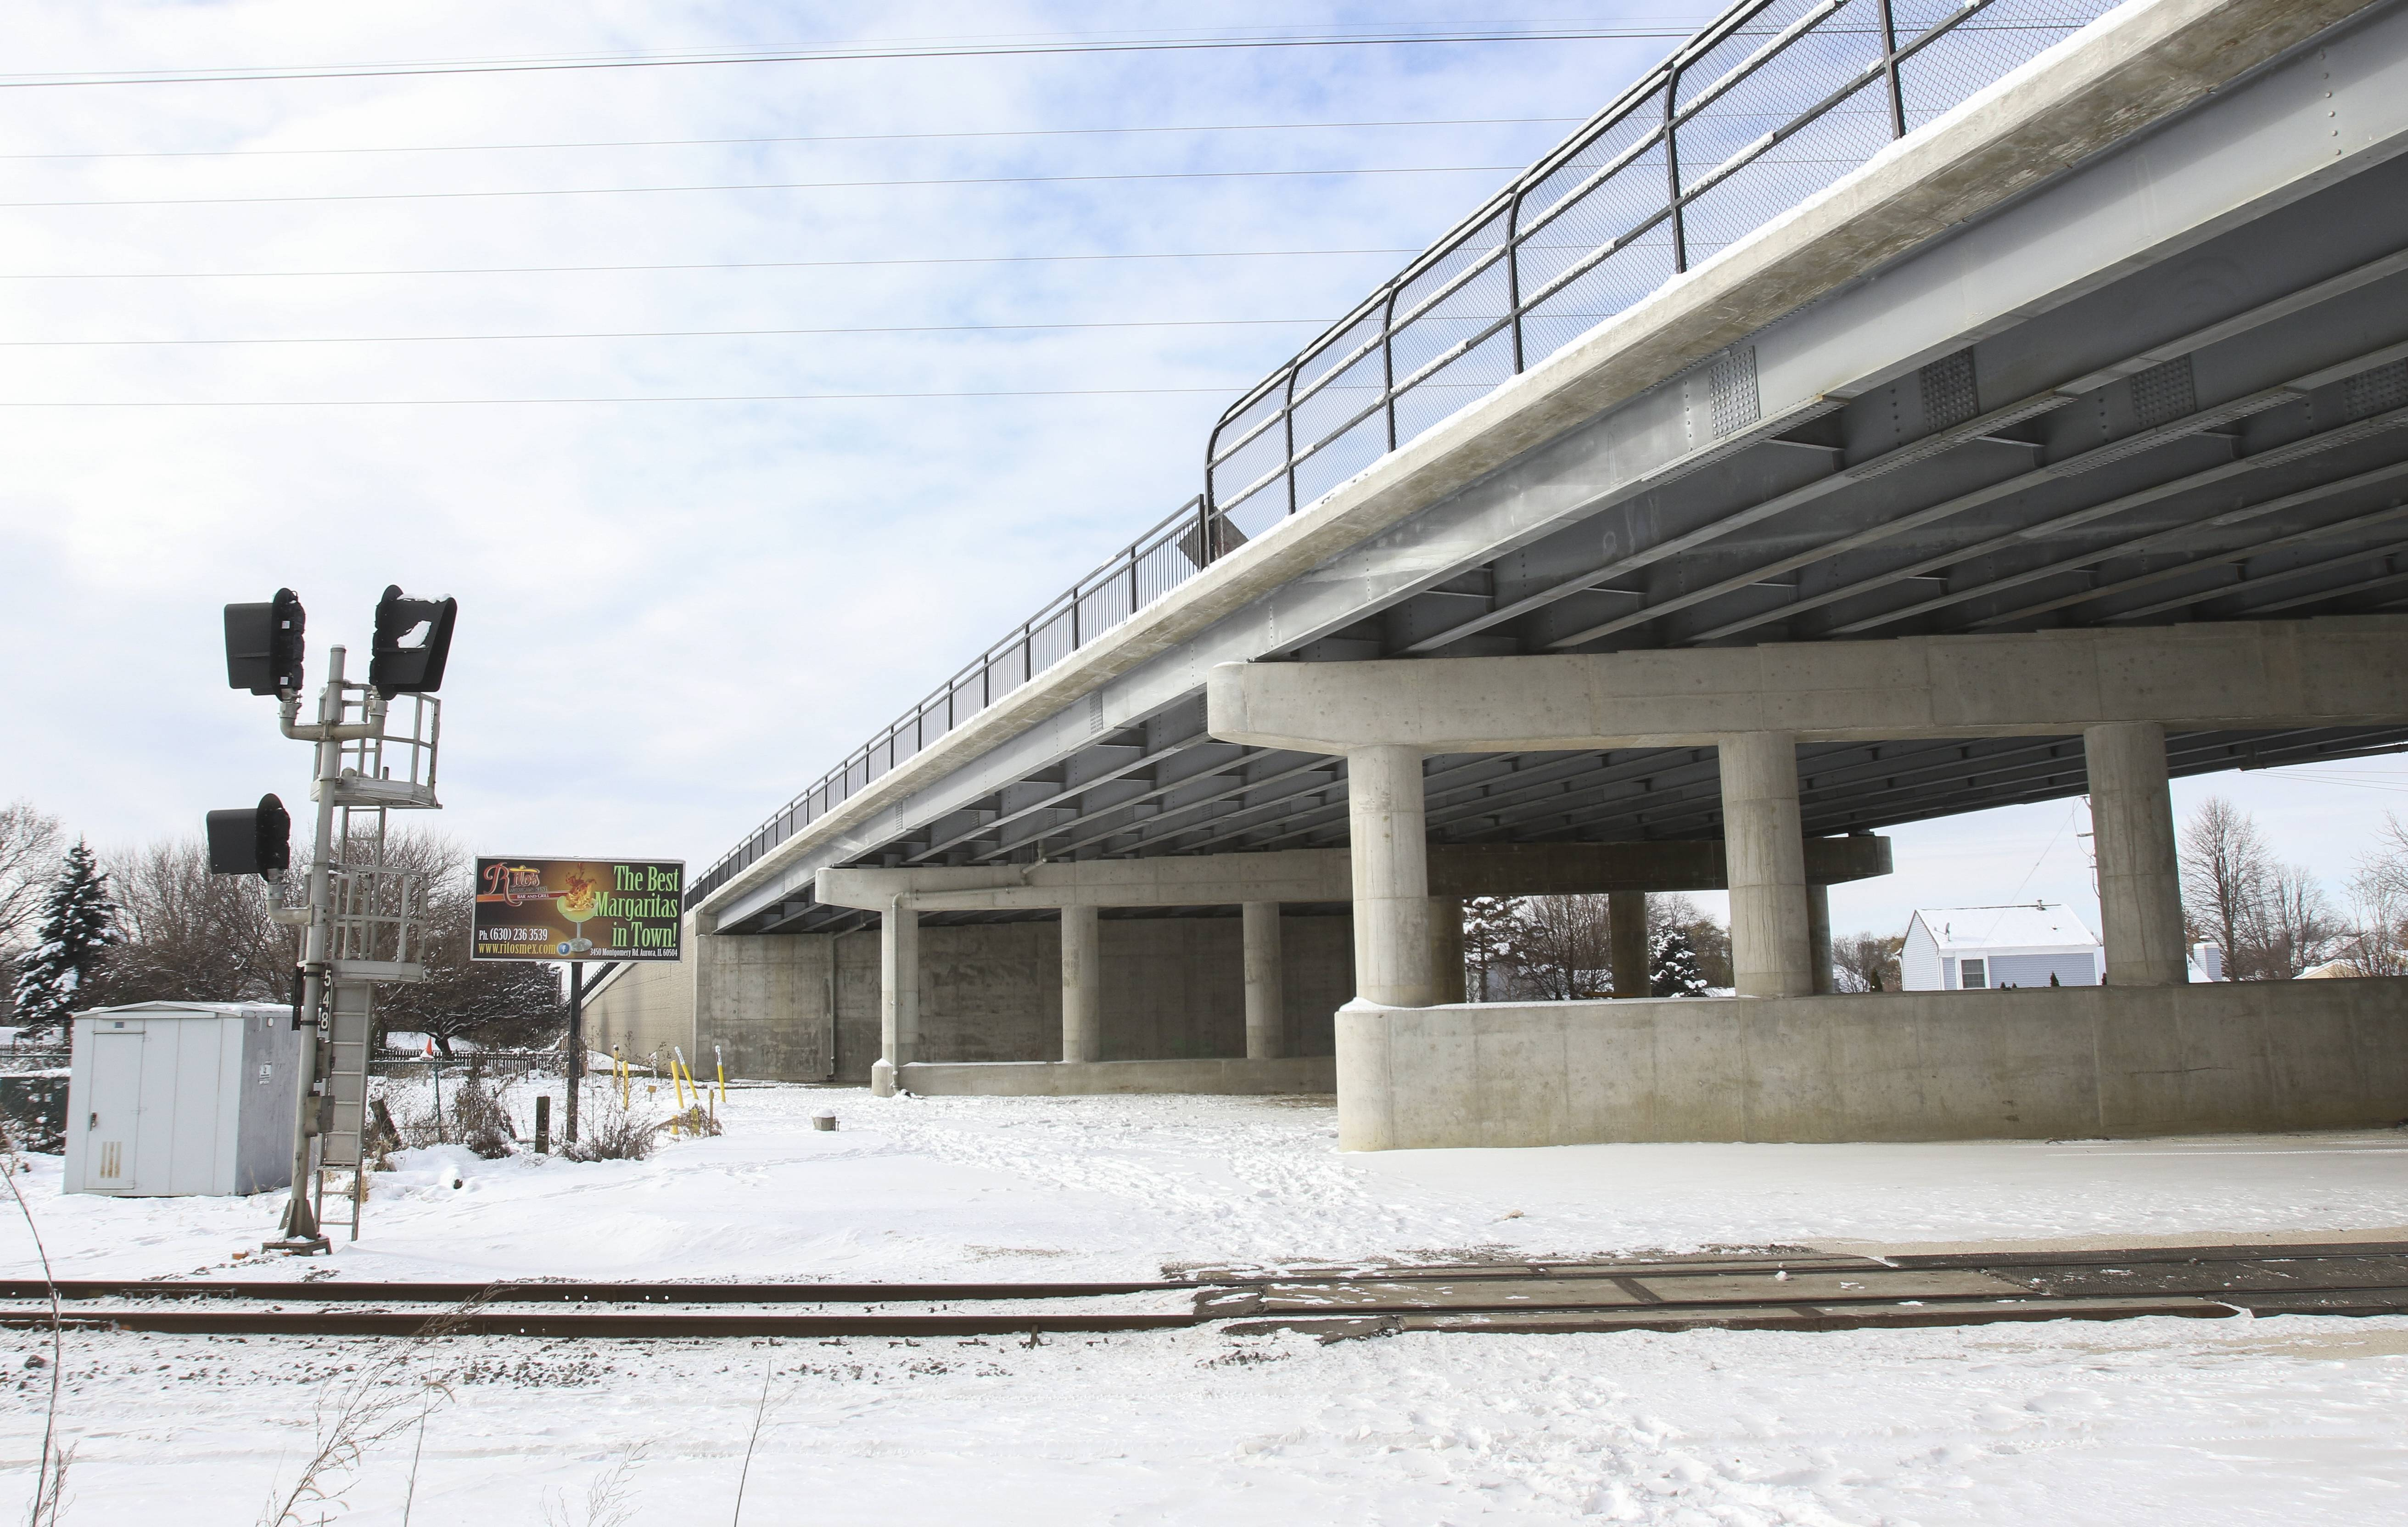 A new bridge carries Route 34 over the Canadian National railroad in Aurora, where two teens were killed when a train struck their car in 1999. Now, two lanes of traffic in each direction as well as bicyclists and people on foot can continue on their way while an average of 42 trains a day pass below.